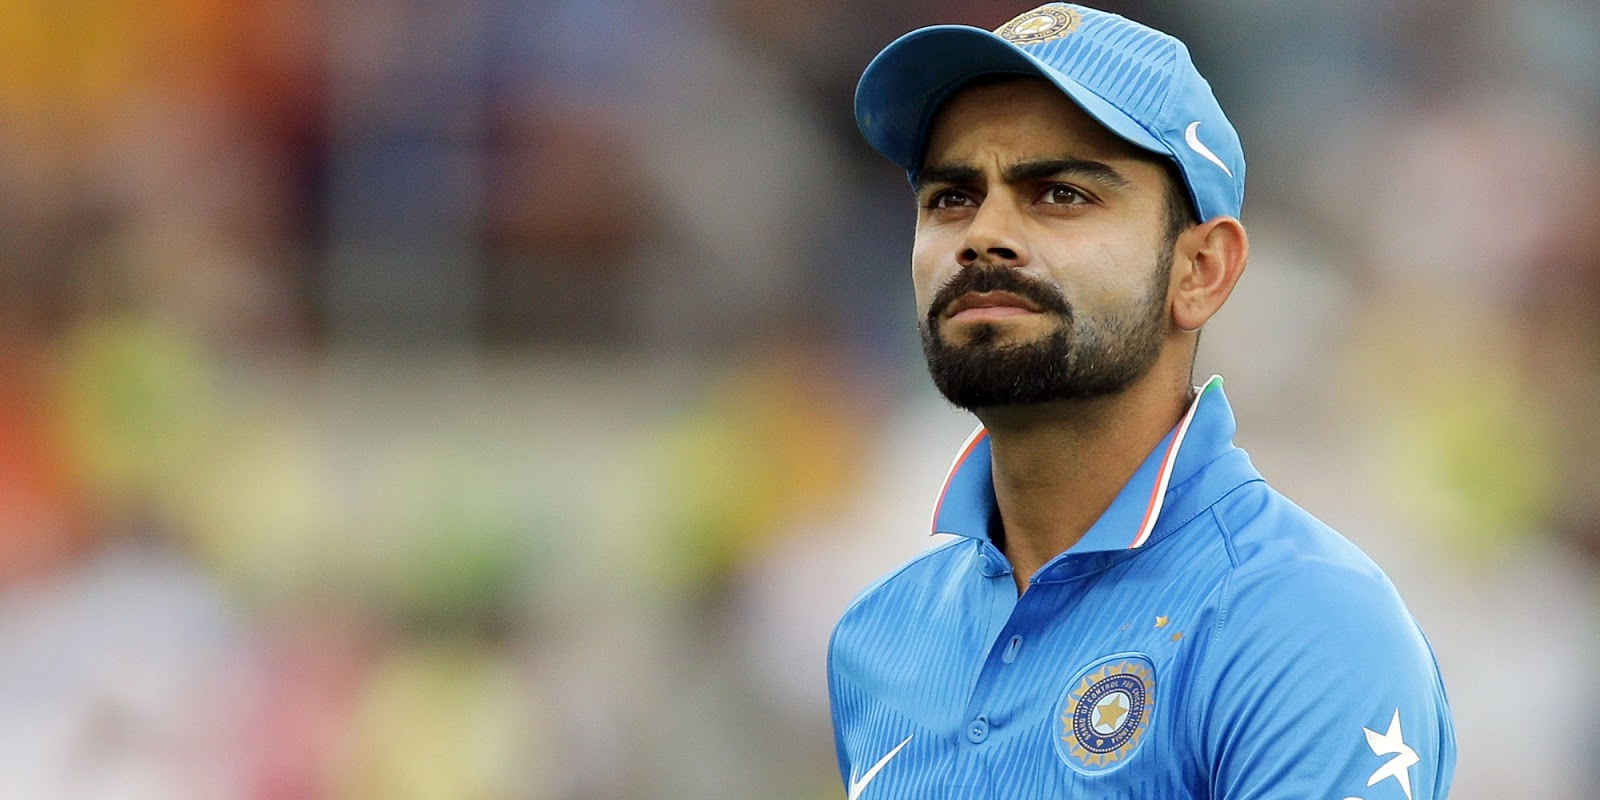 Kohli Ends His 6 Year Association With Pepsi